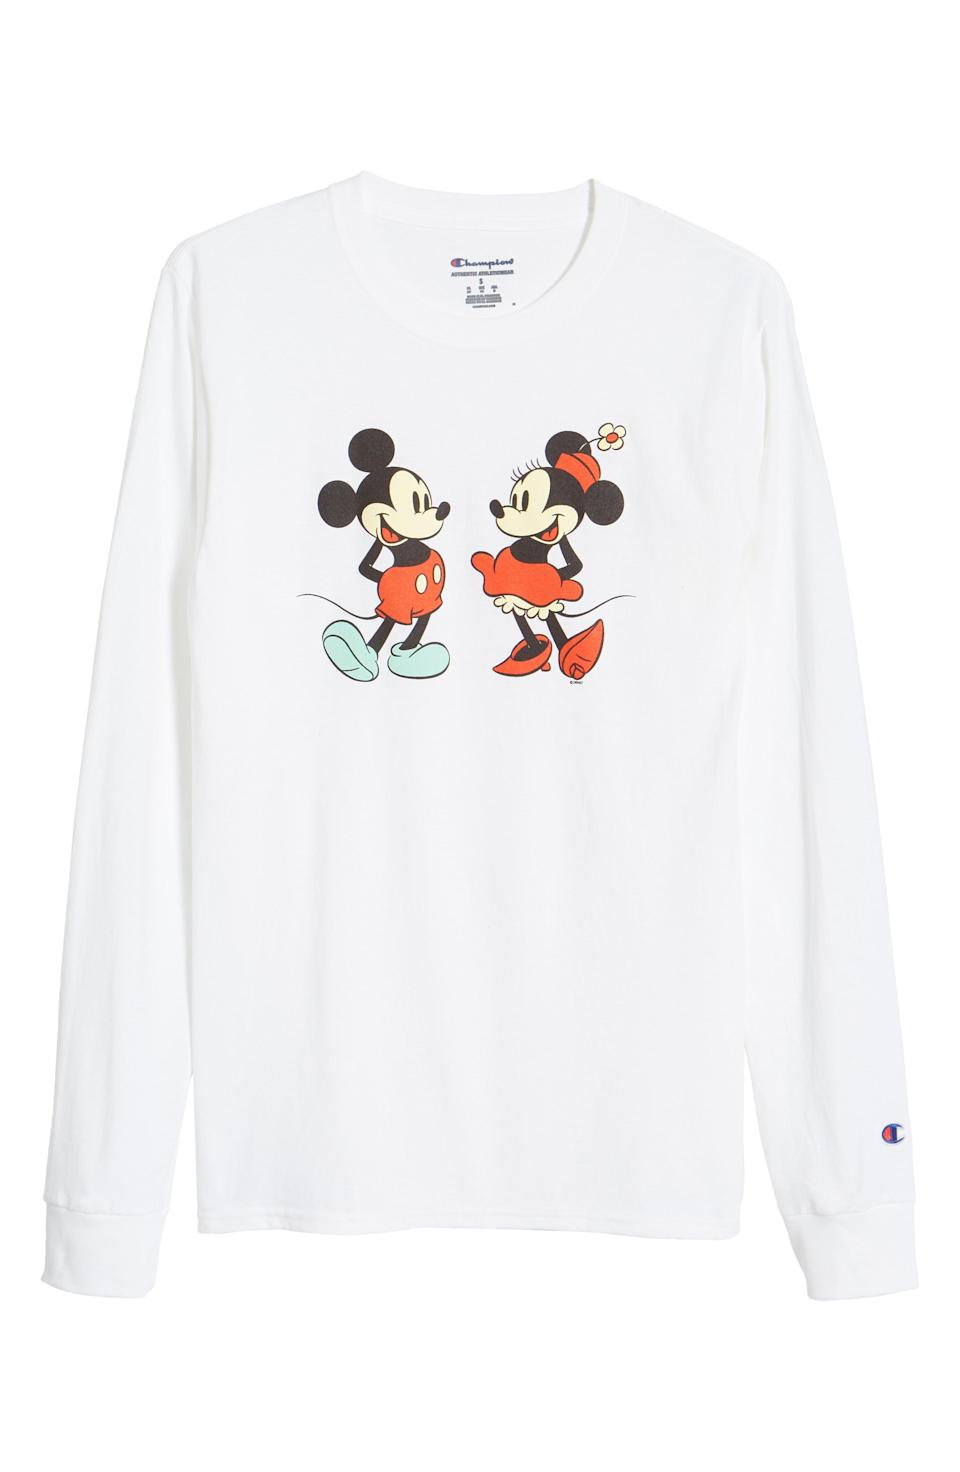 Champion's Mickey and Minnie long-sleeved T-shirt.